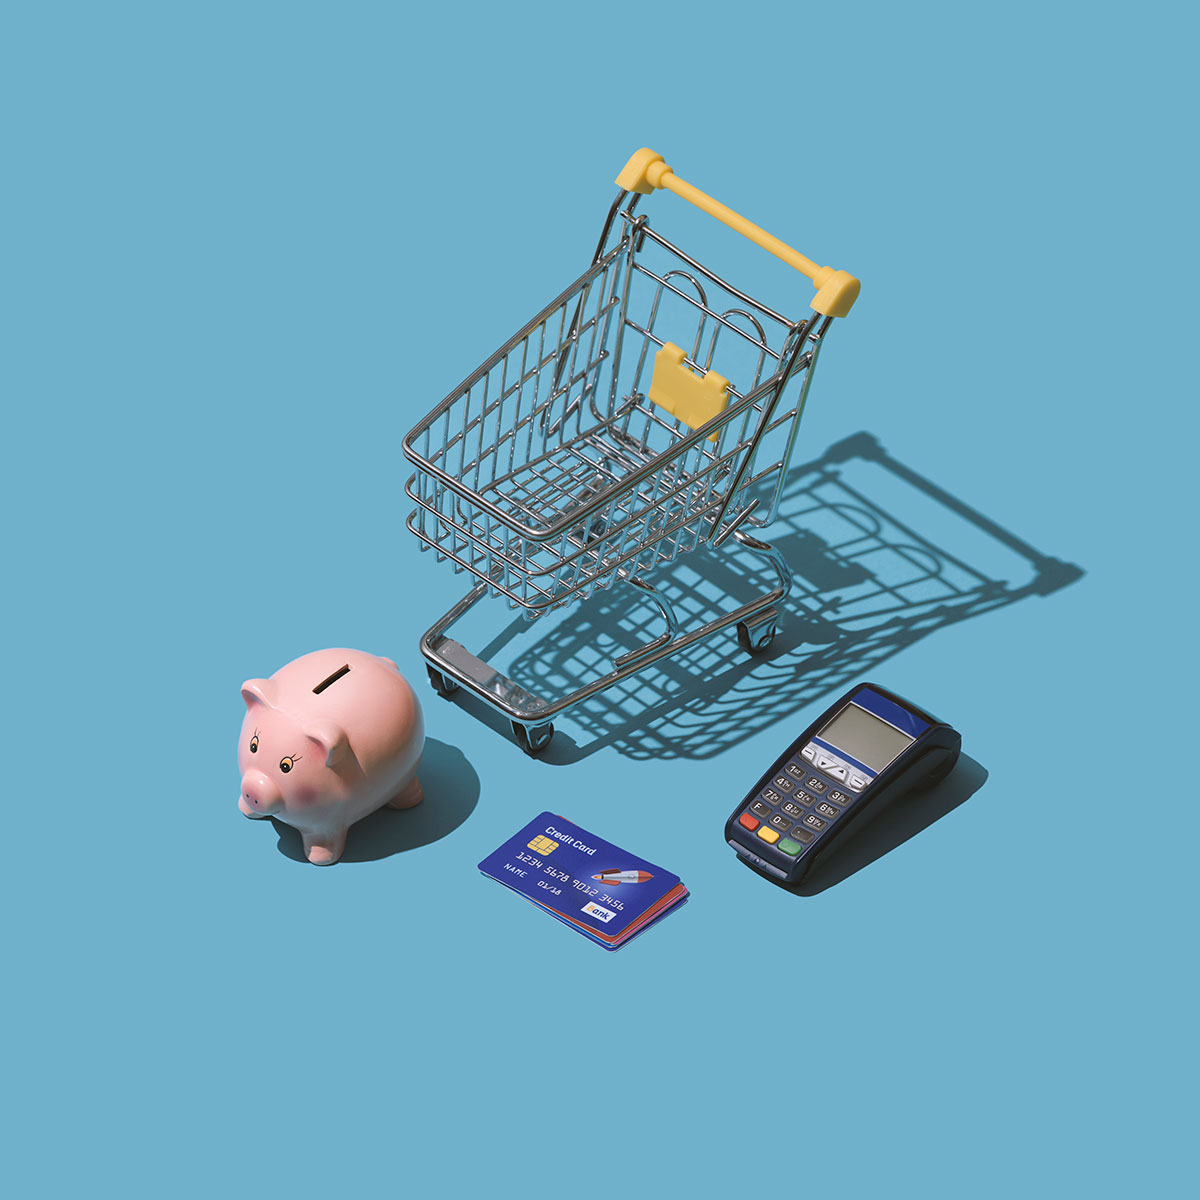 grocery-shopping-with-credit-cards-CTS3W9L